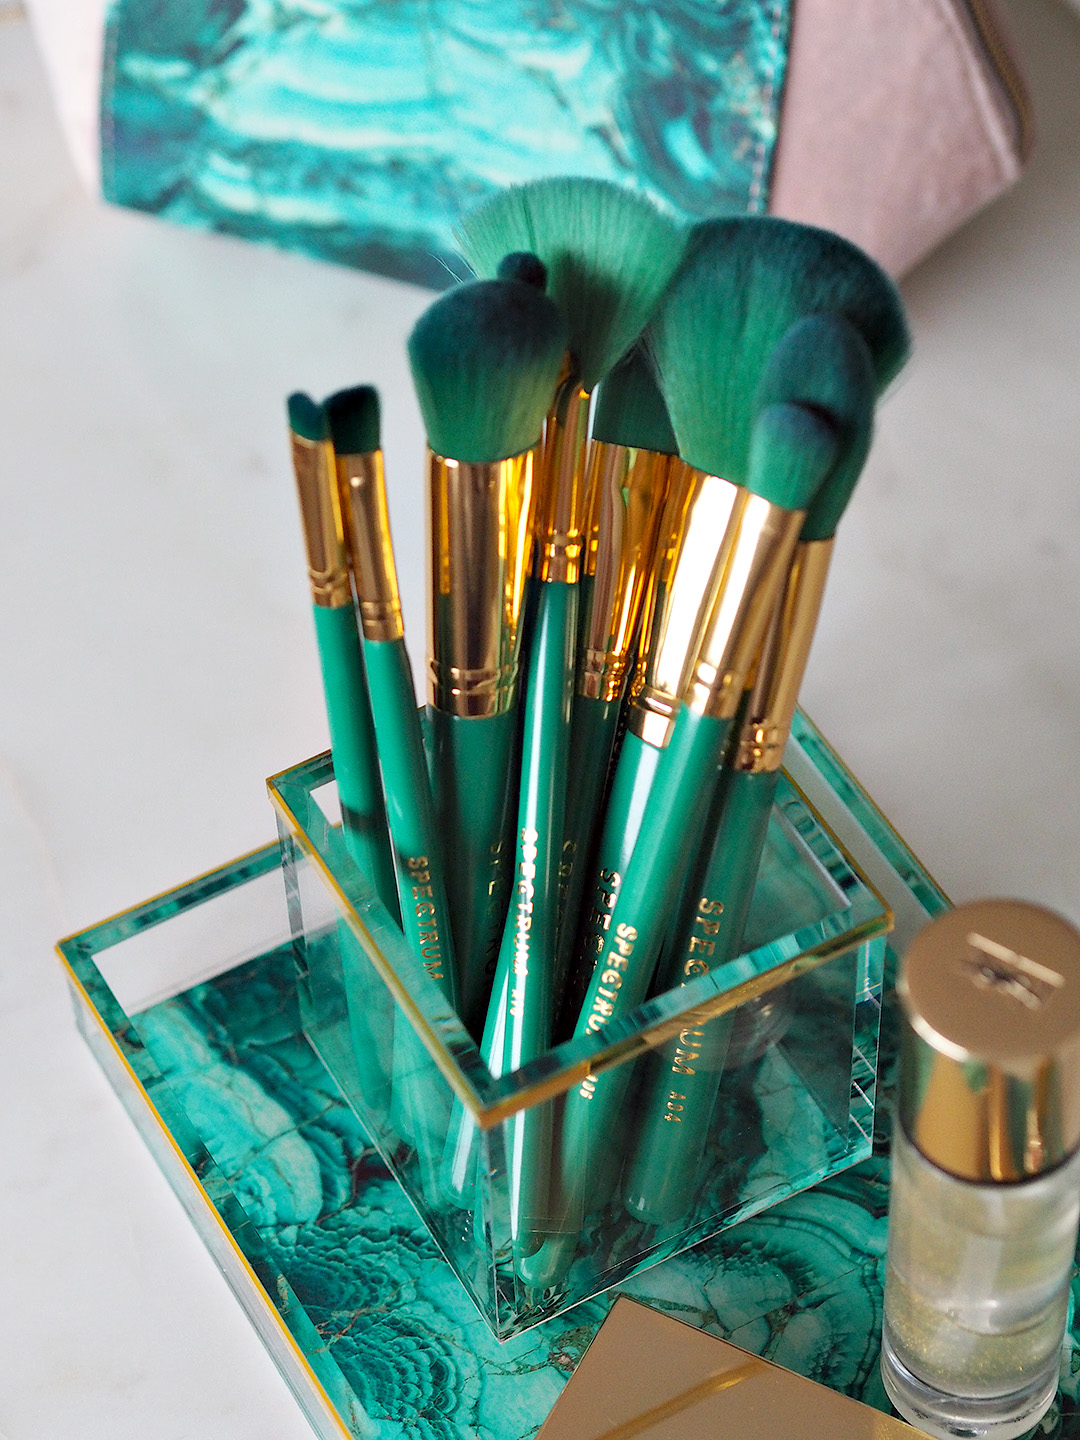 Spectrum Crystal Chic Makeup Brushes